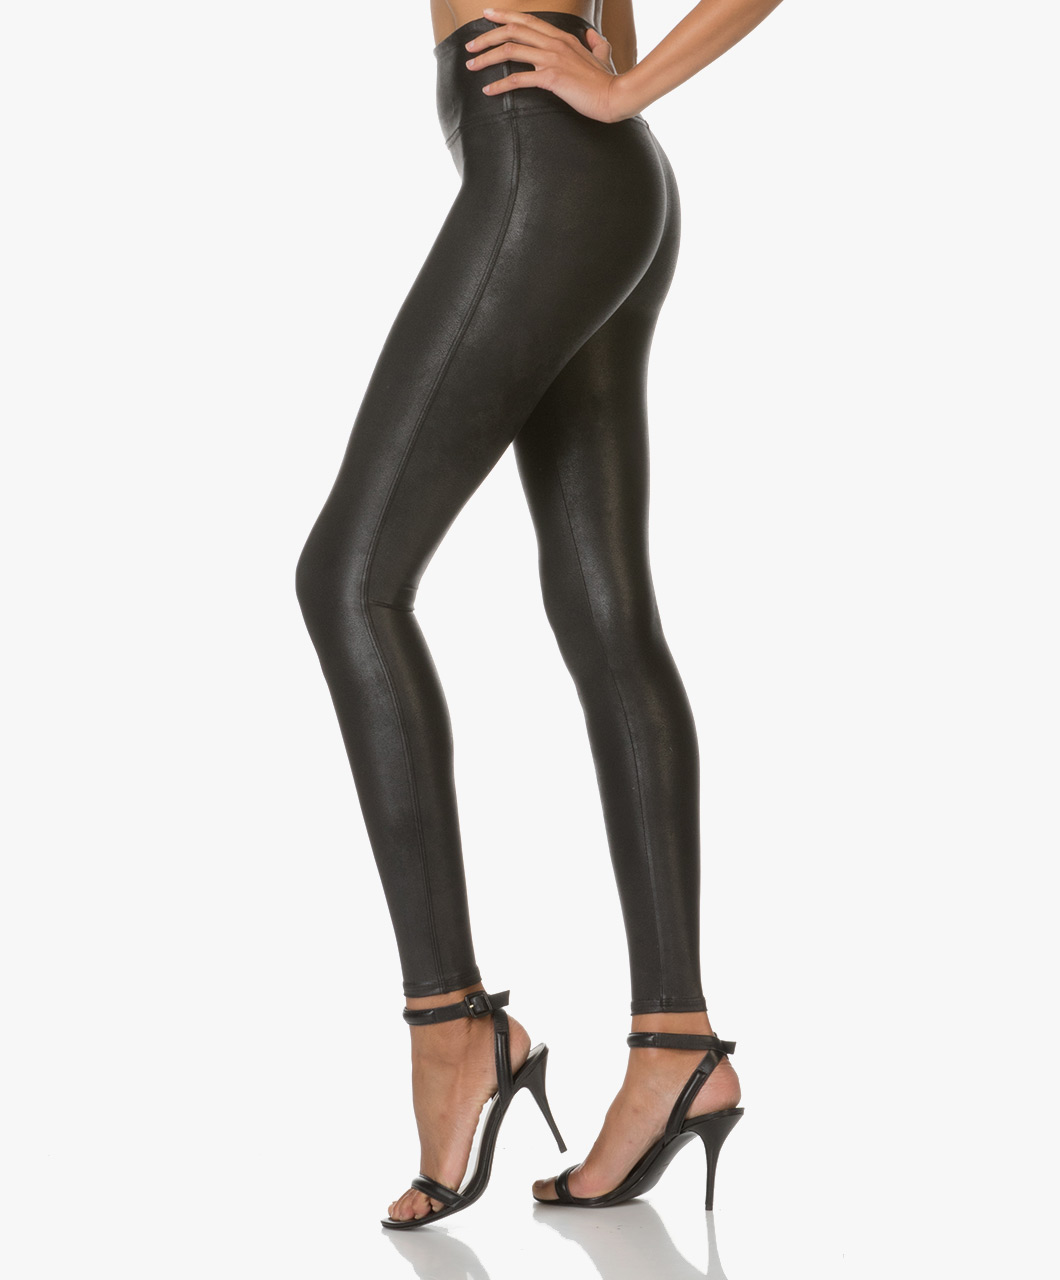 afbad2441374c SPANX® Ready-to-Wow! Faux Leather Leggings - Black - spx 2437 9999